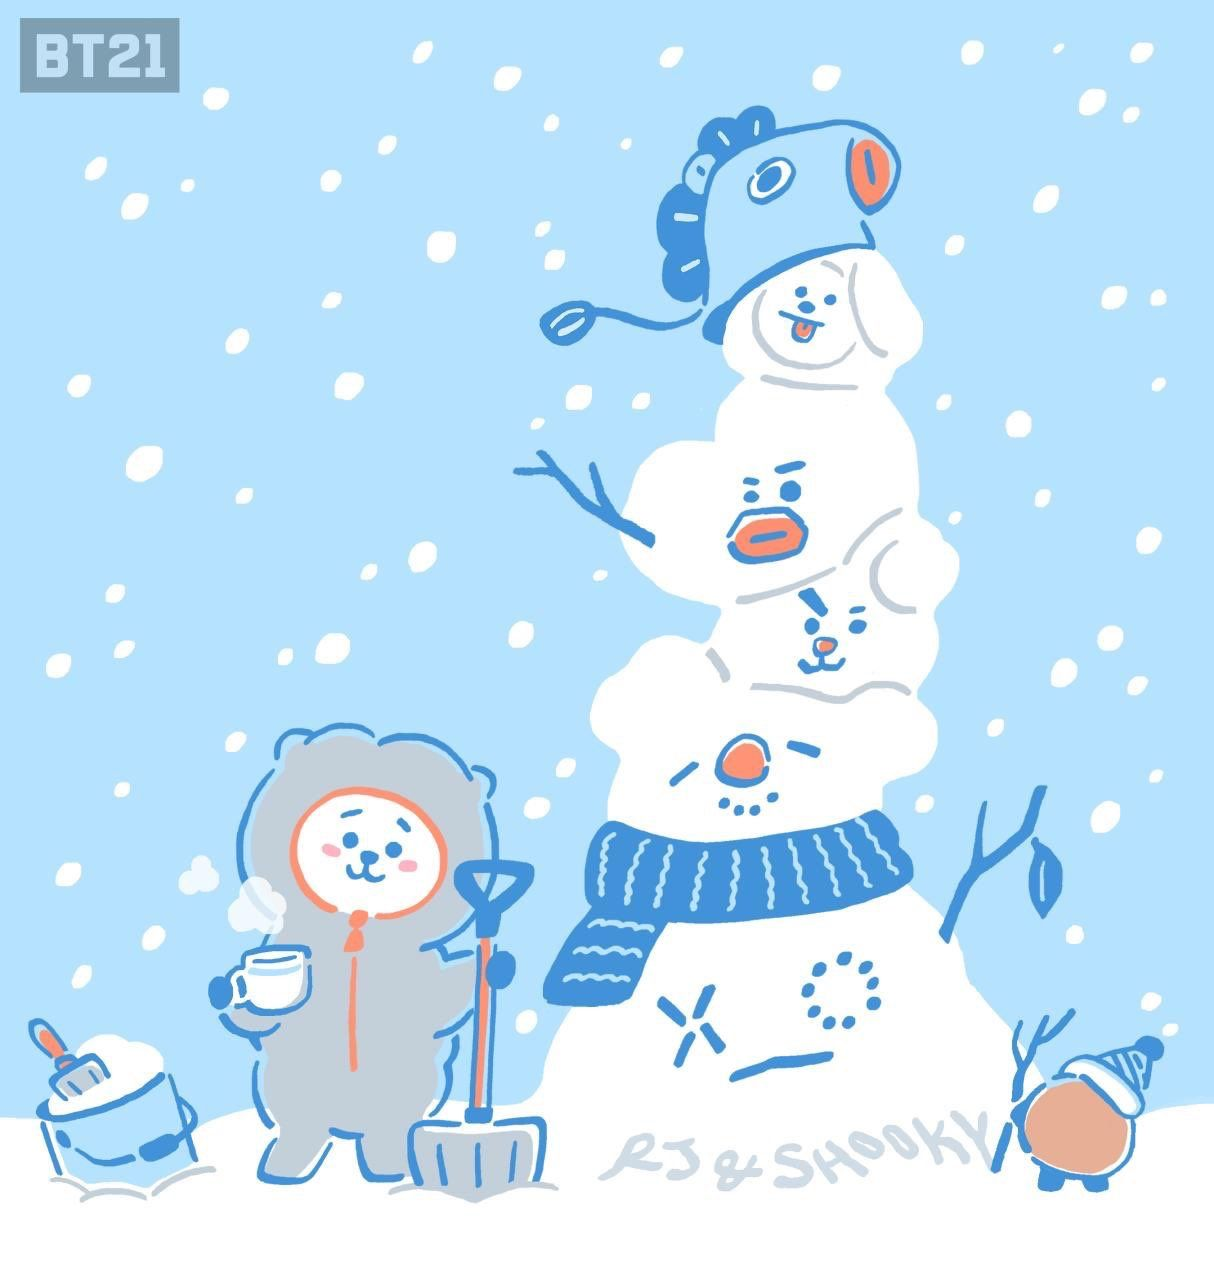 1214x1280 36 images about bt21 on We Heart It | See more about bt21 ...